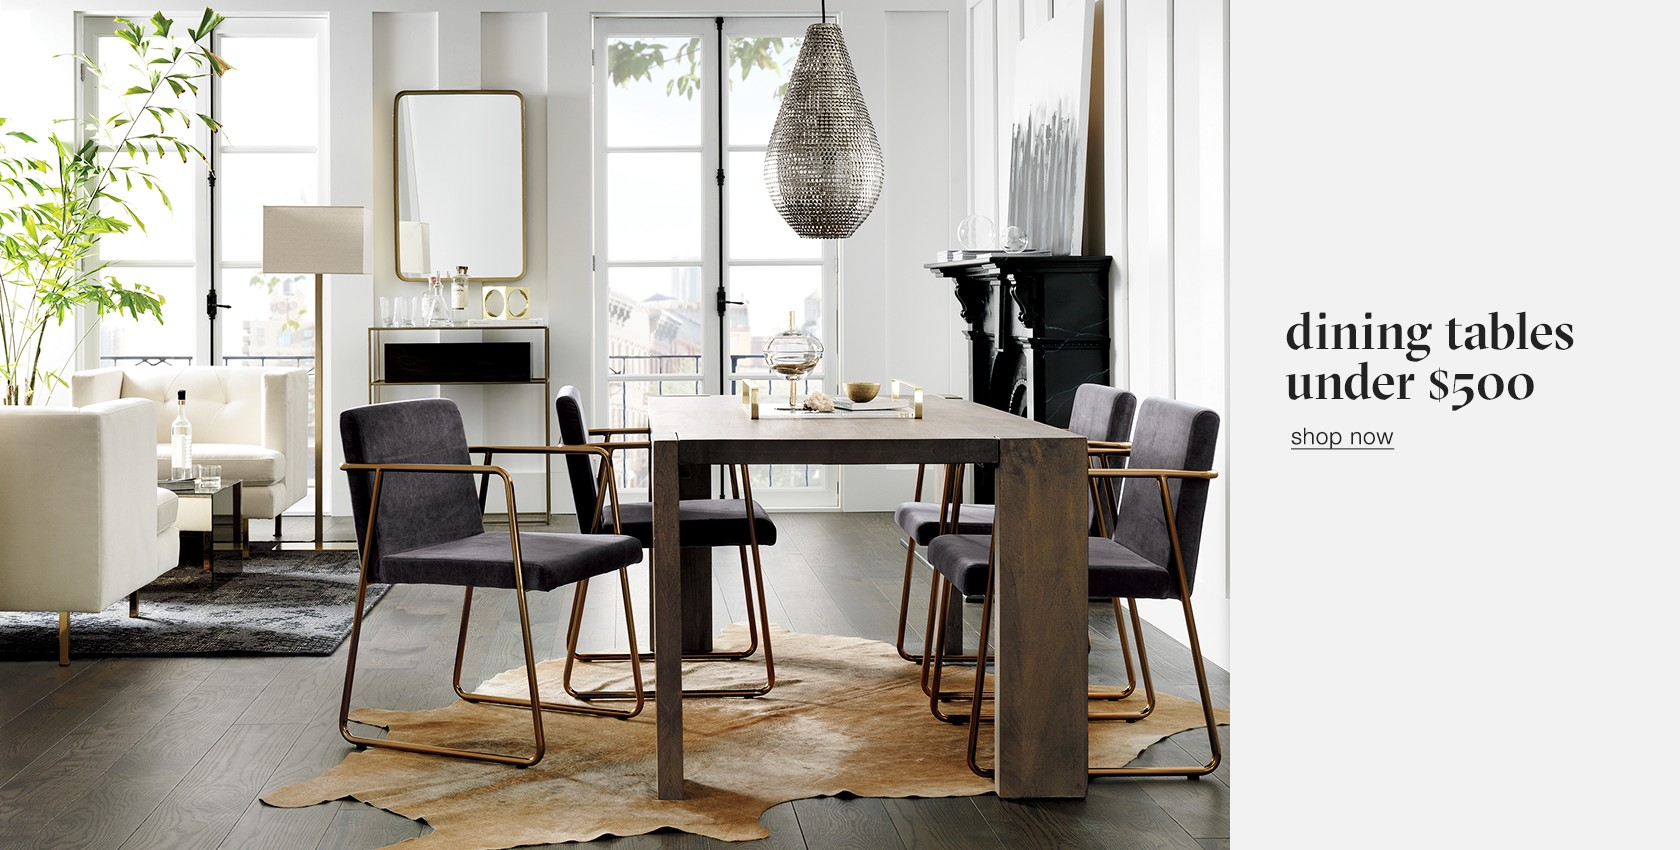 dining tables under $500